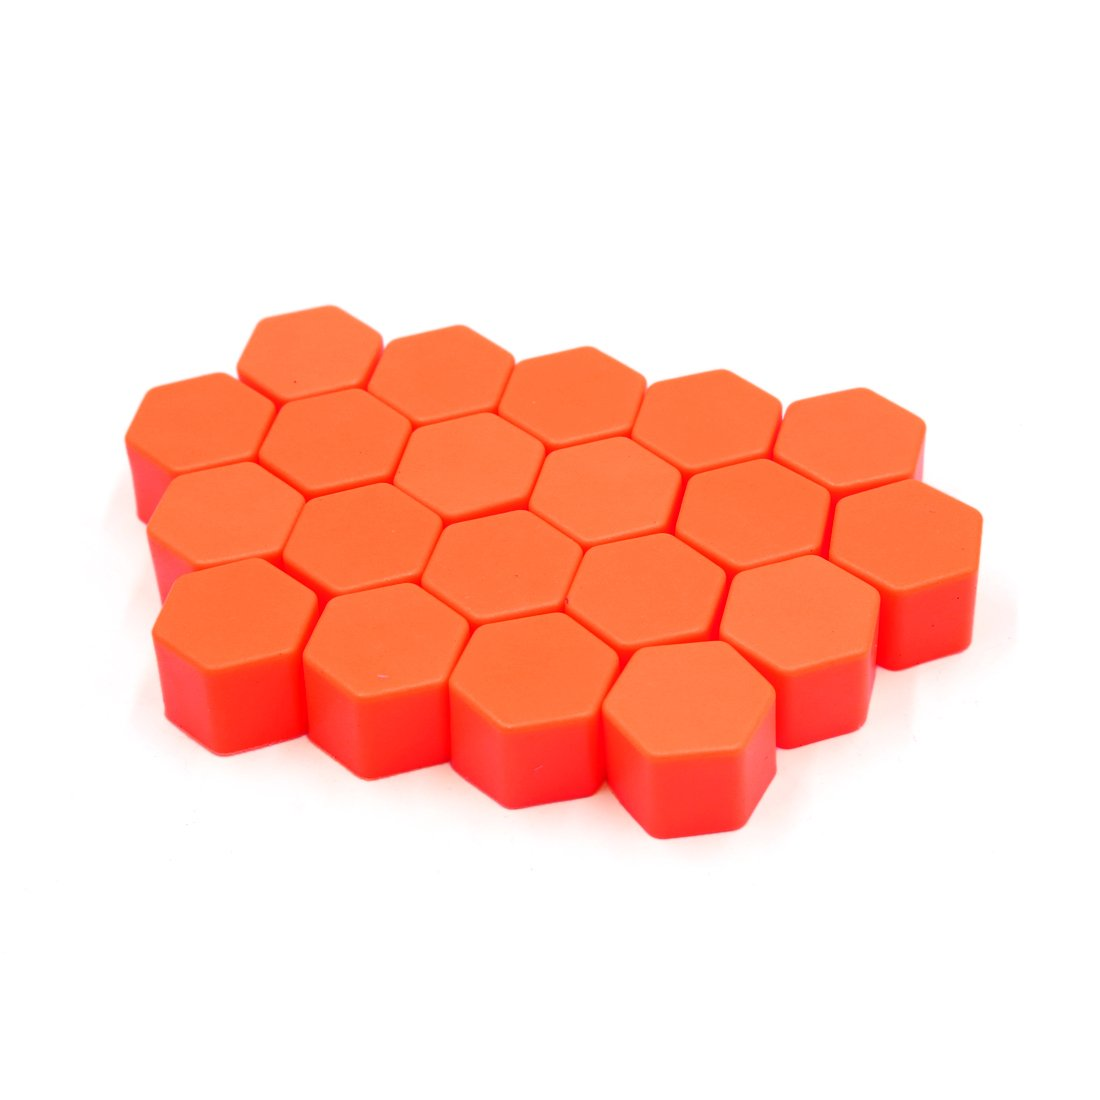 uxcell 20Pcs Orange Silicone 19mm Car Wheel Nut Lug Hub Covers Screw Dust Protect Caps a17042600ux0434